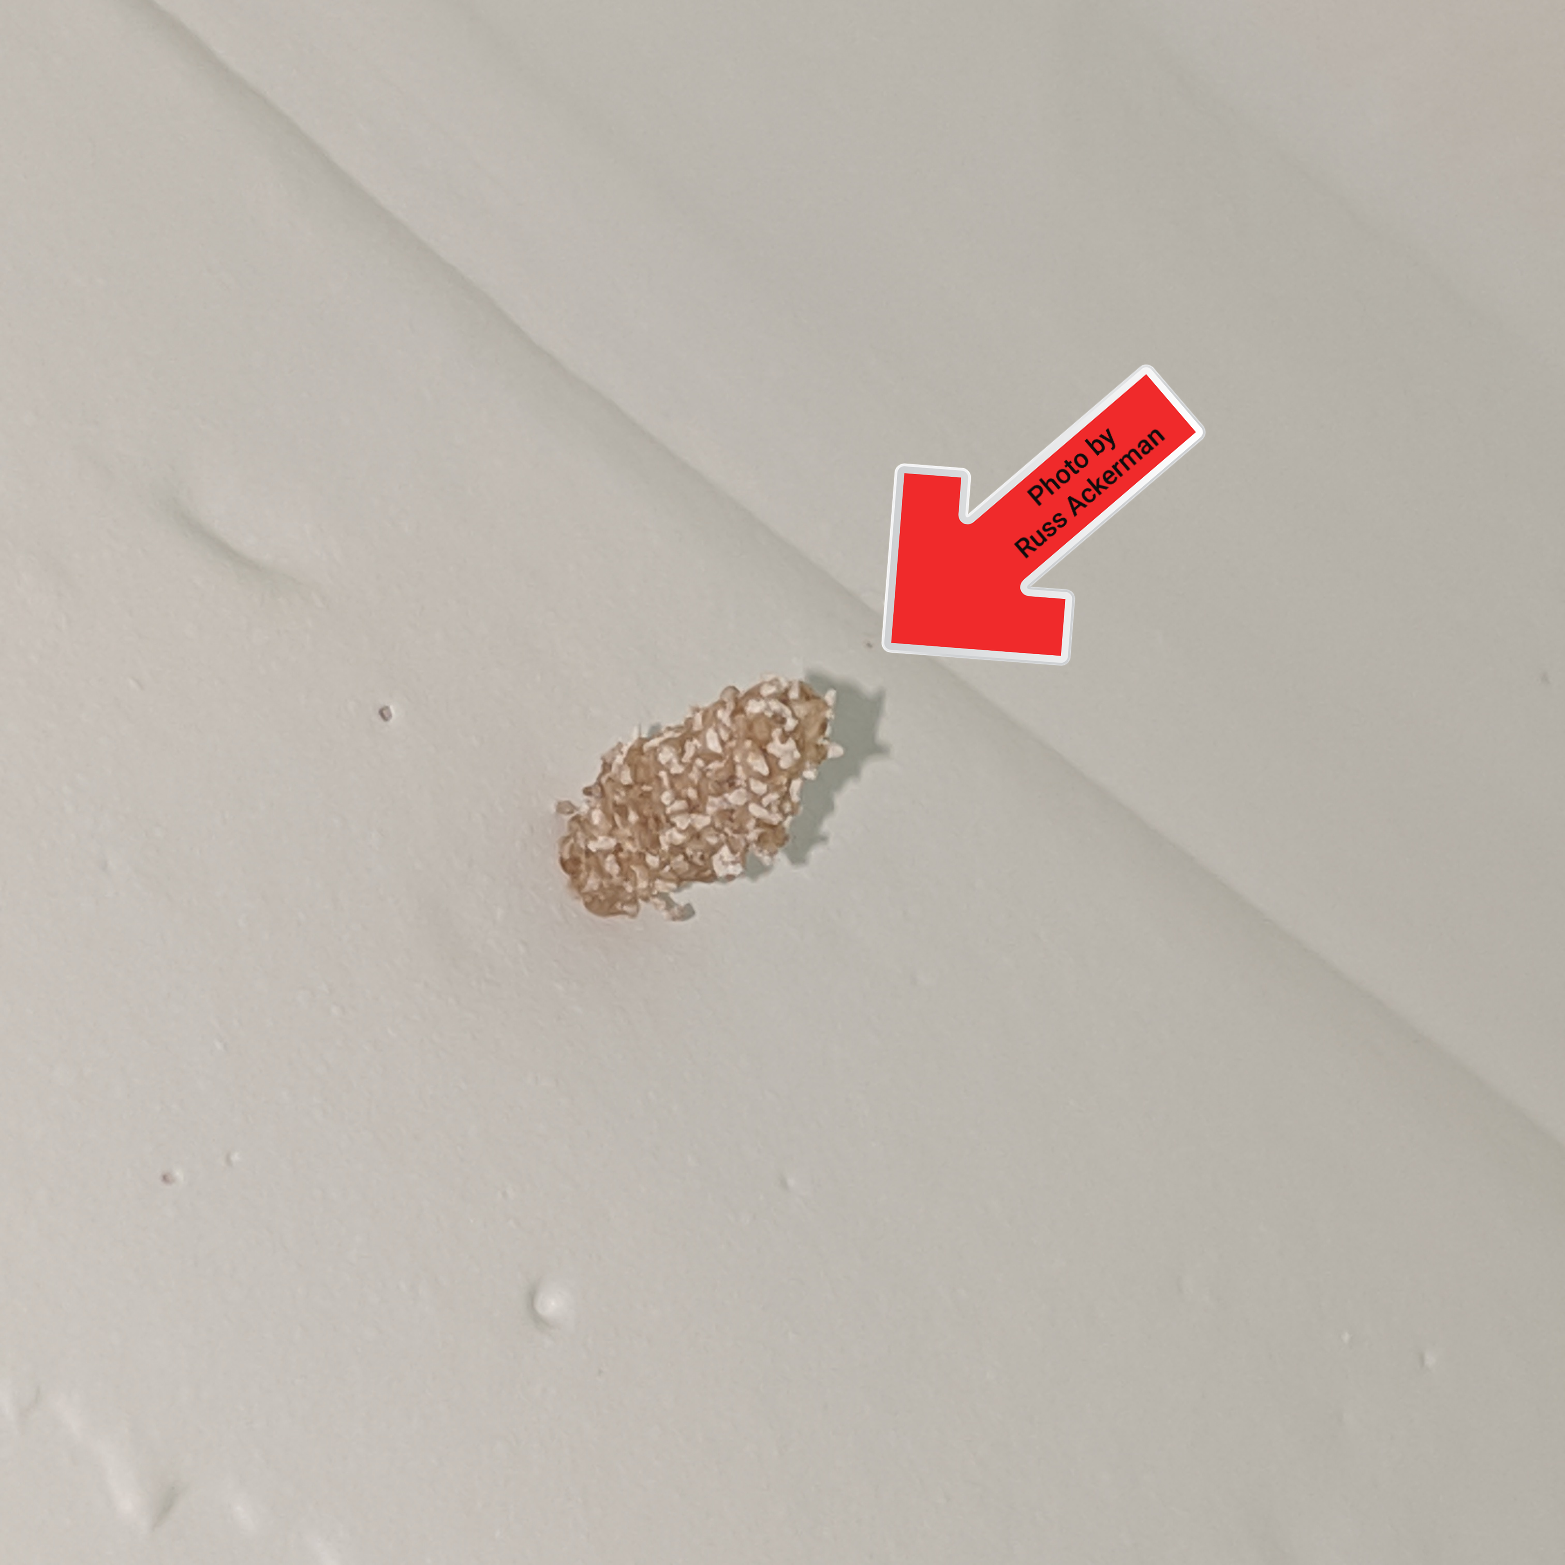 Termite drop tubes or exit holes can often be found at ceilings or walls, they may also look like pin holes, grains of sand or stalactites in a cave.